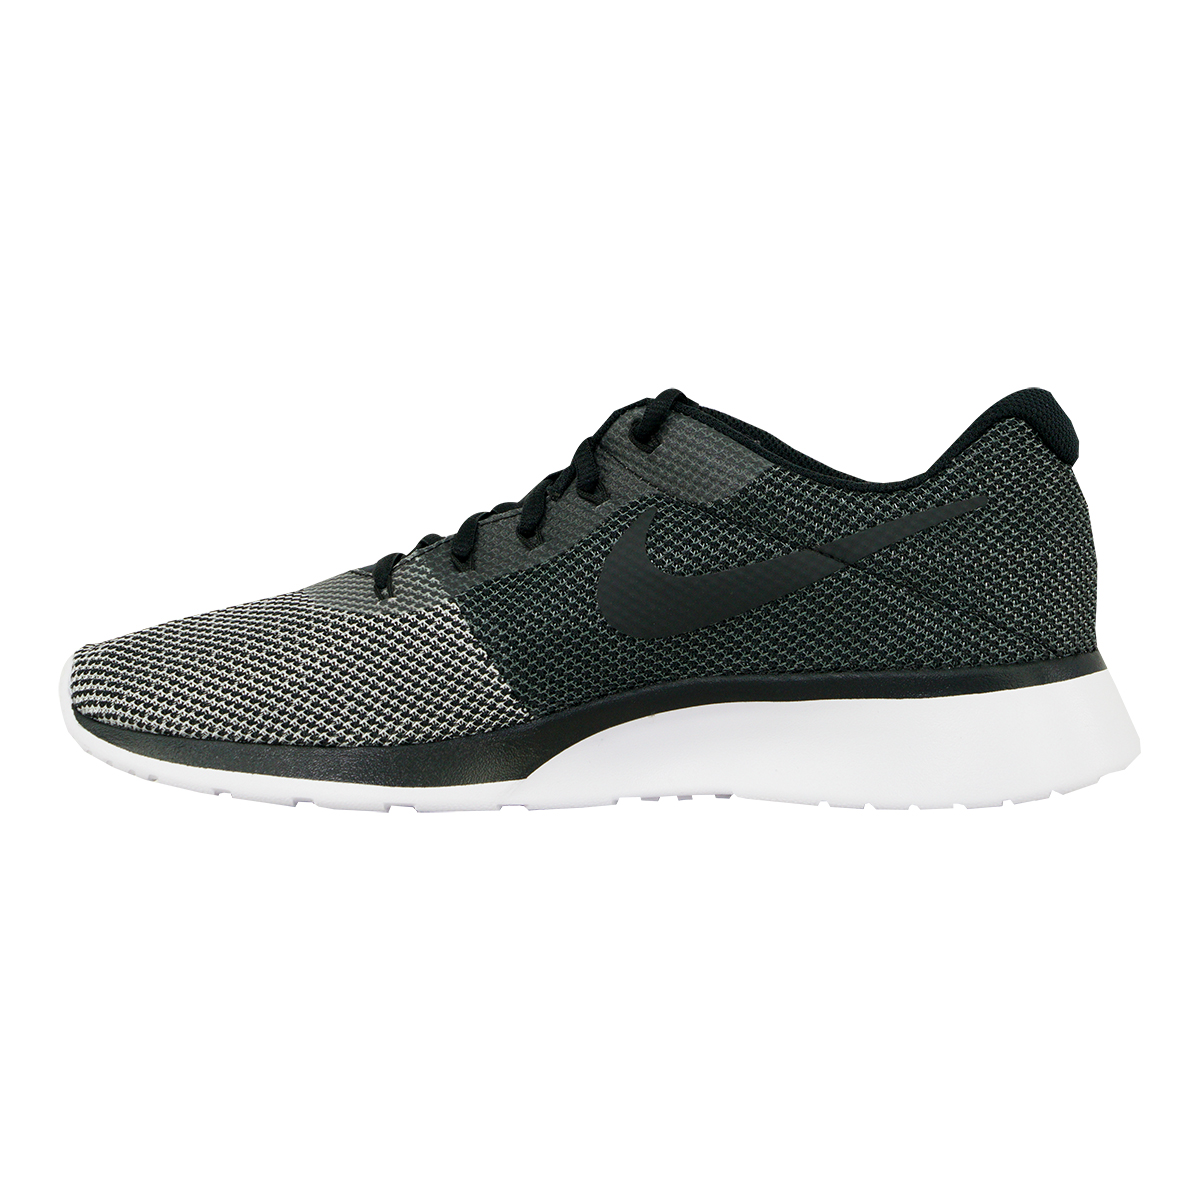 Nike-Men-039-s-Tanjun-Racer-Running-Shoes thumbnail 15